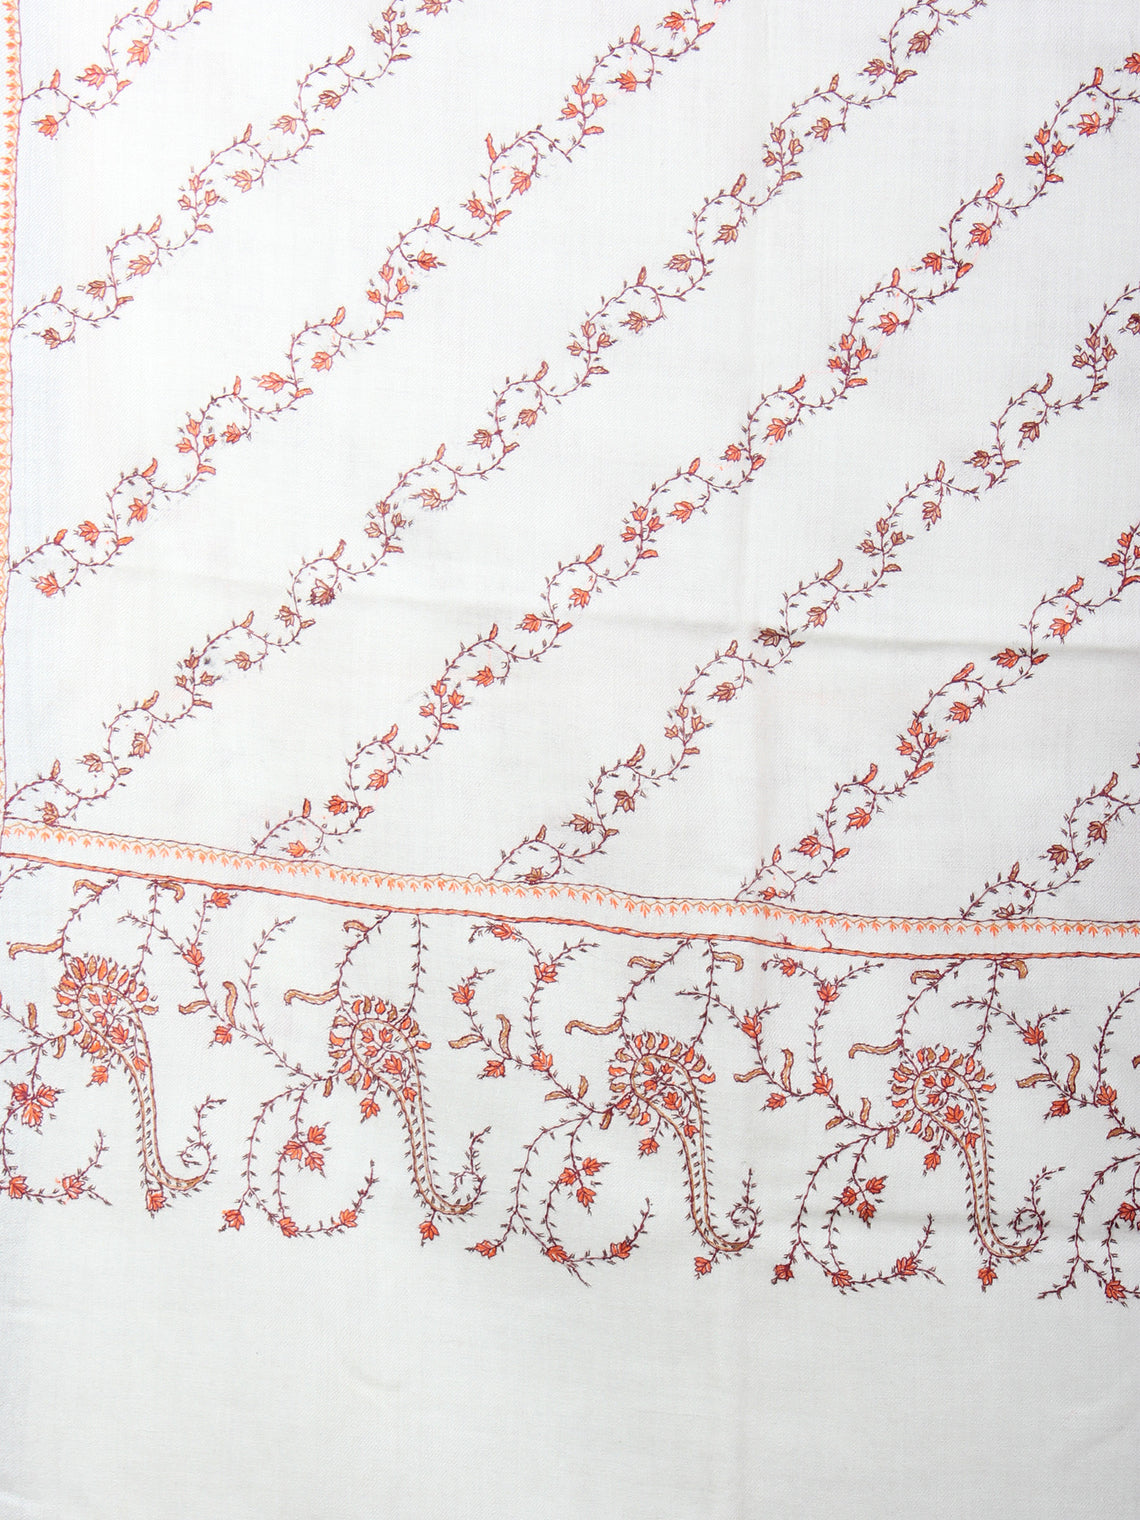 Ivory Orange Brown Pure Wool Jaldar Cashmere Shawl With Needle Embroidery From Kashmir - S200301